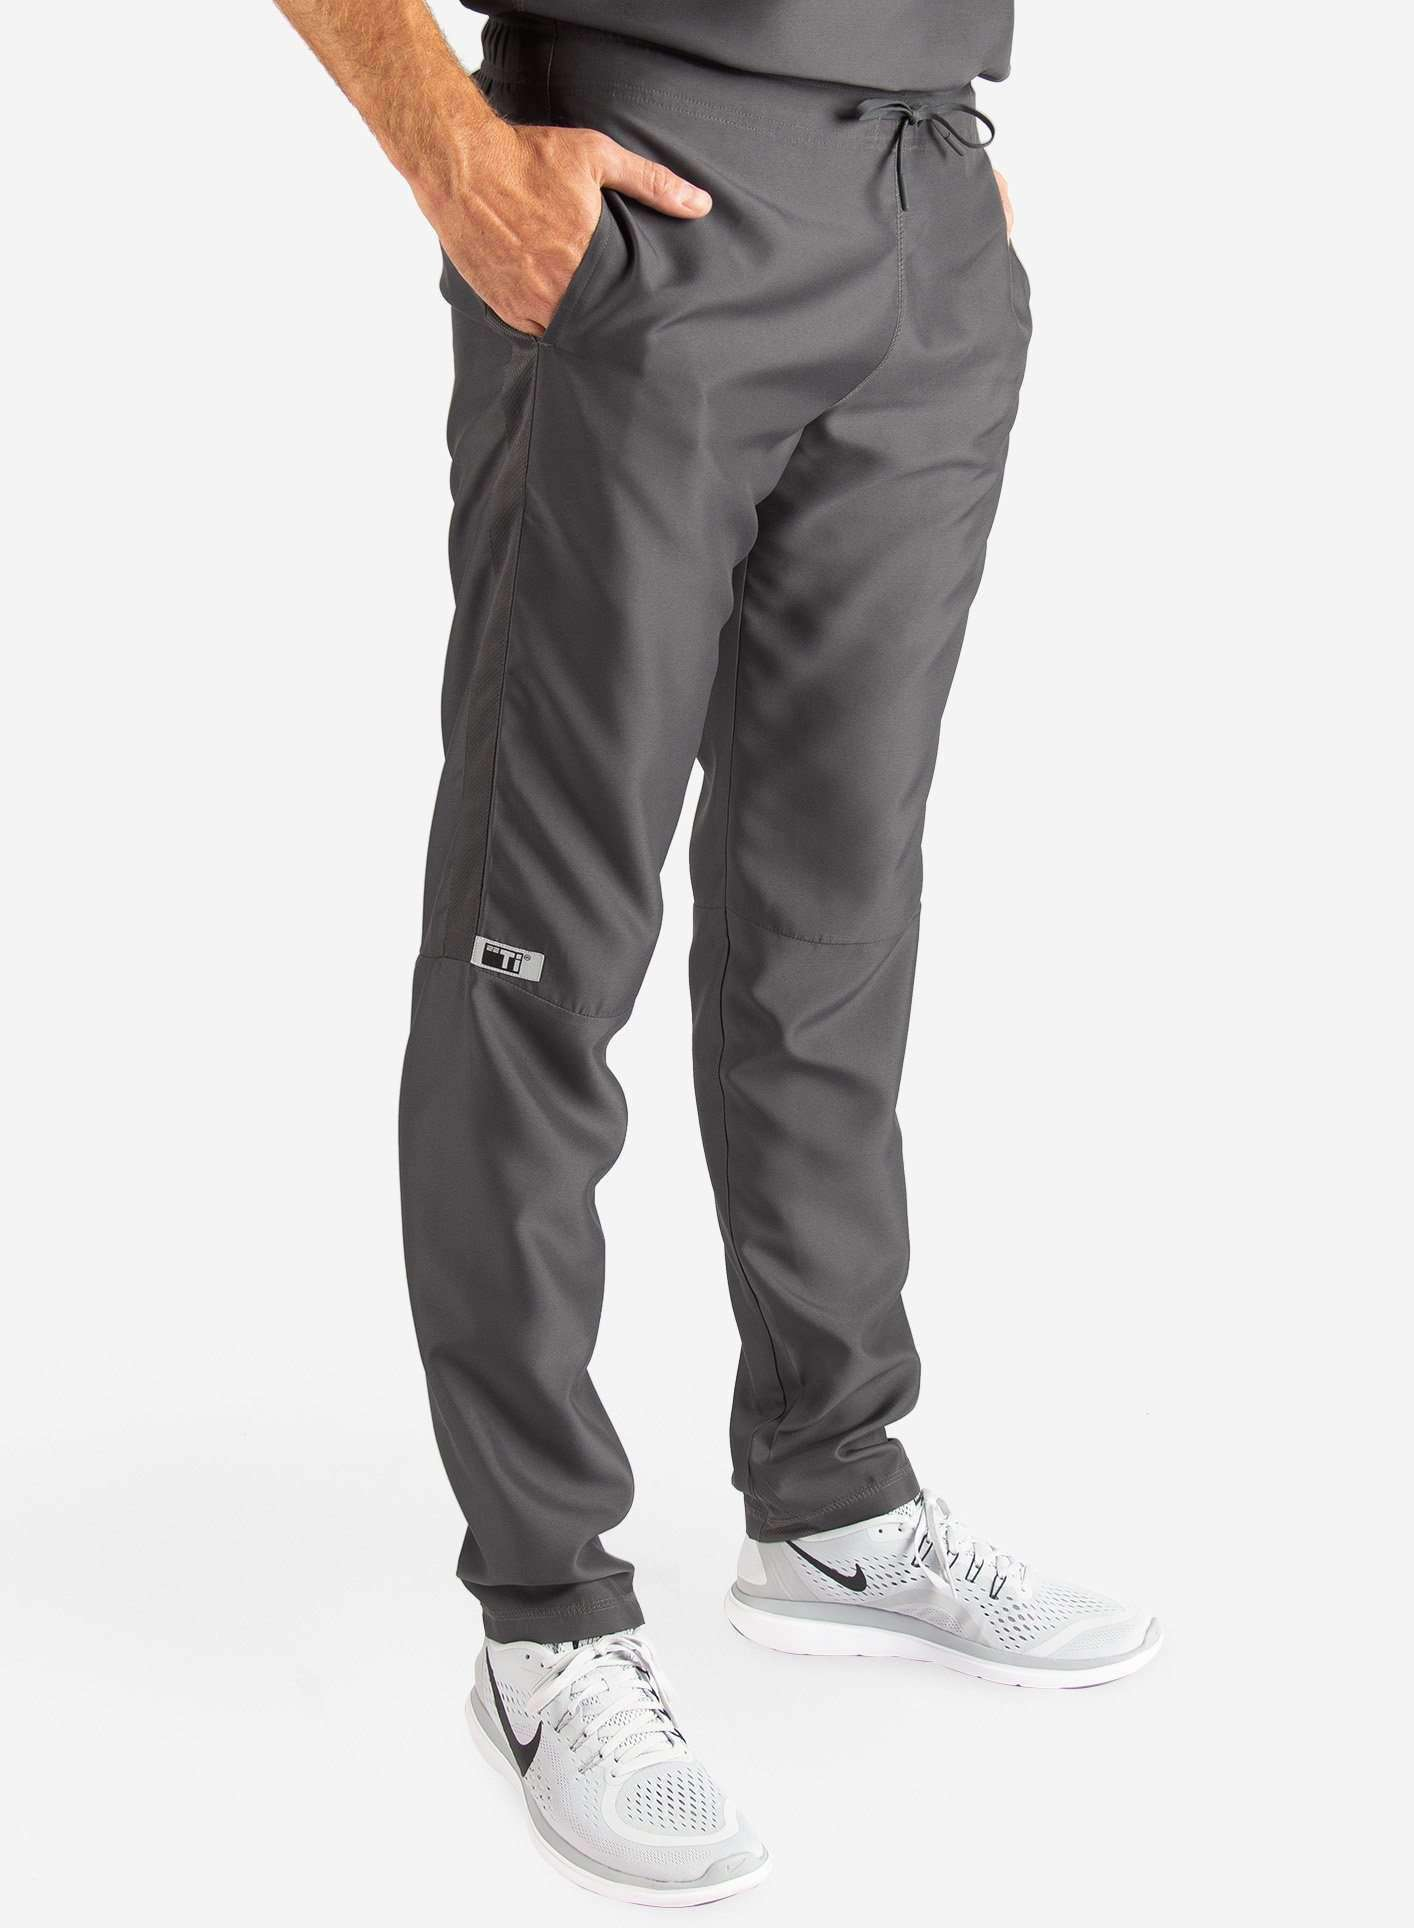 Men's Slim Fit Scrub Pants in Dark Grey